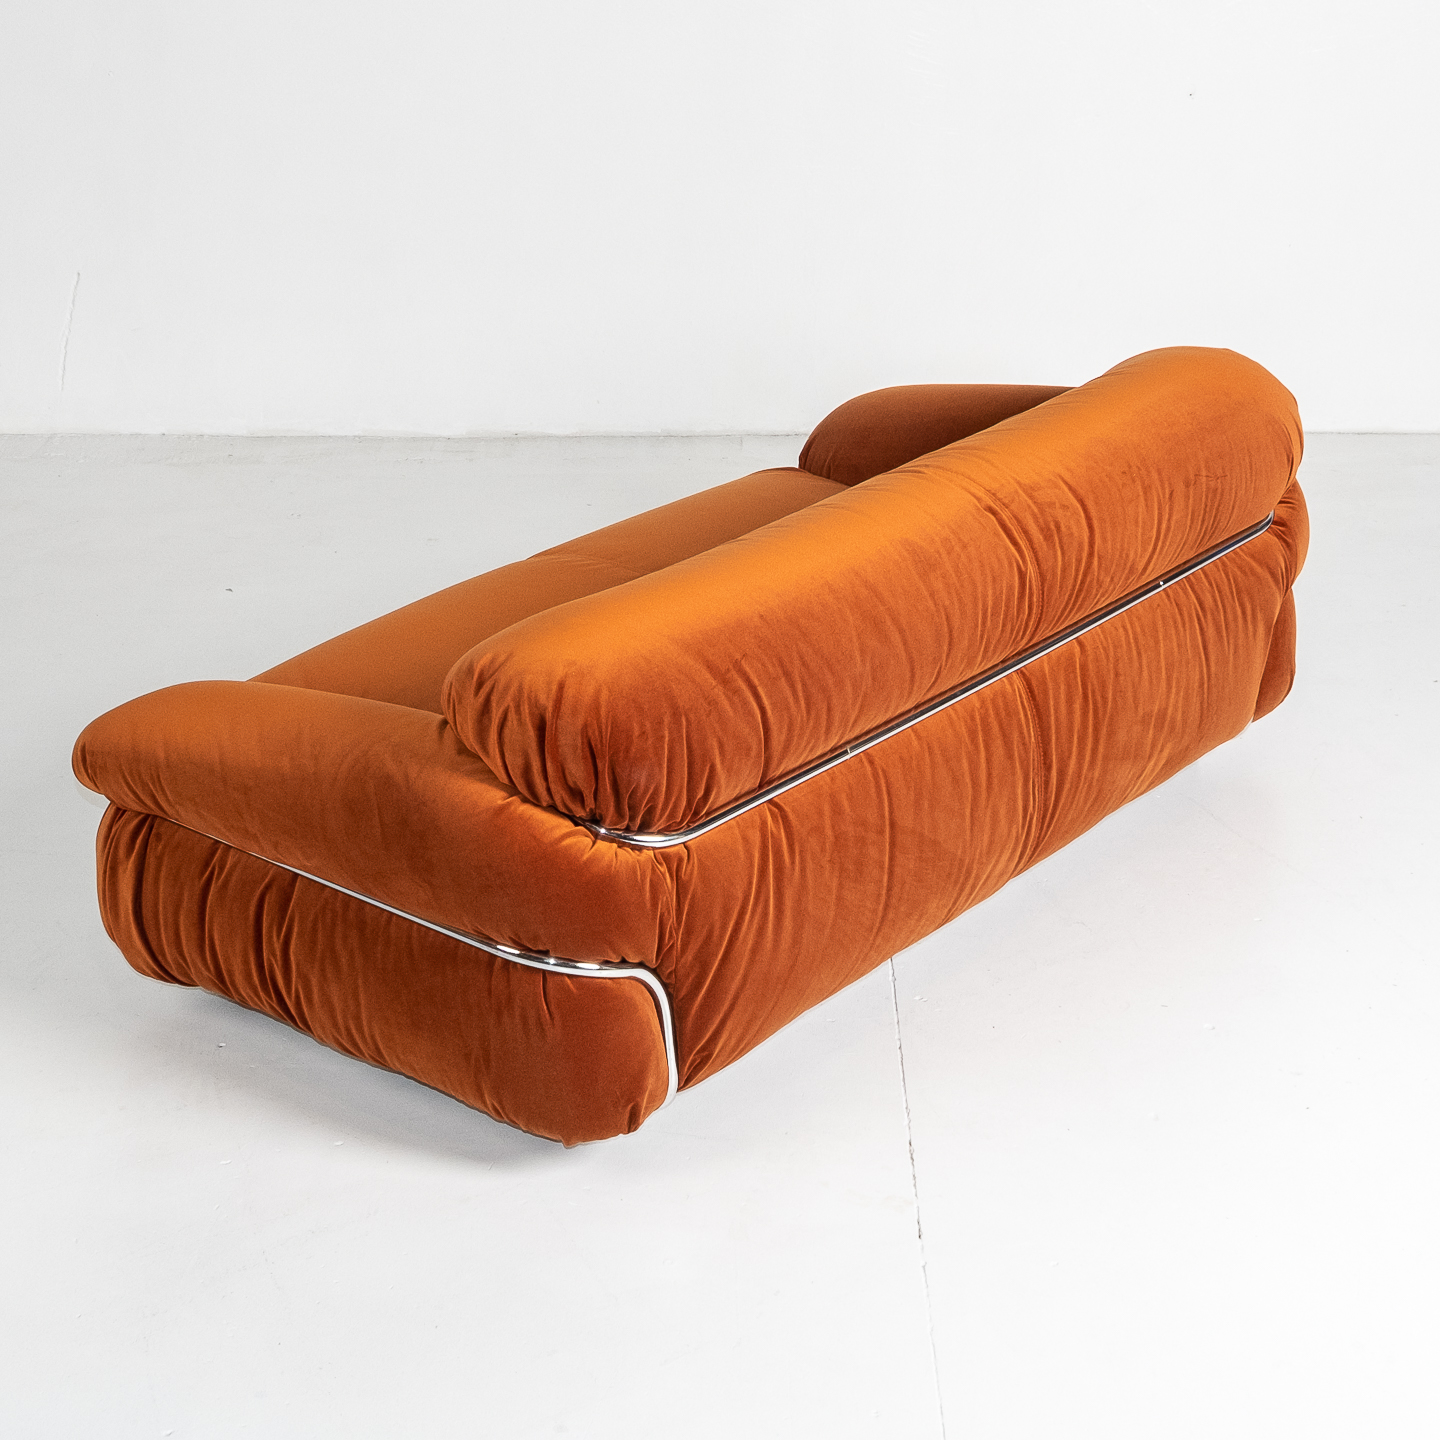 Model 595 Sesann Sofa By Gianfranco Frattini For Cassina, 1970s, Italy 201